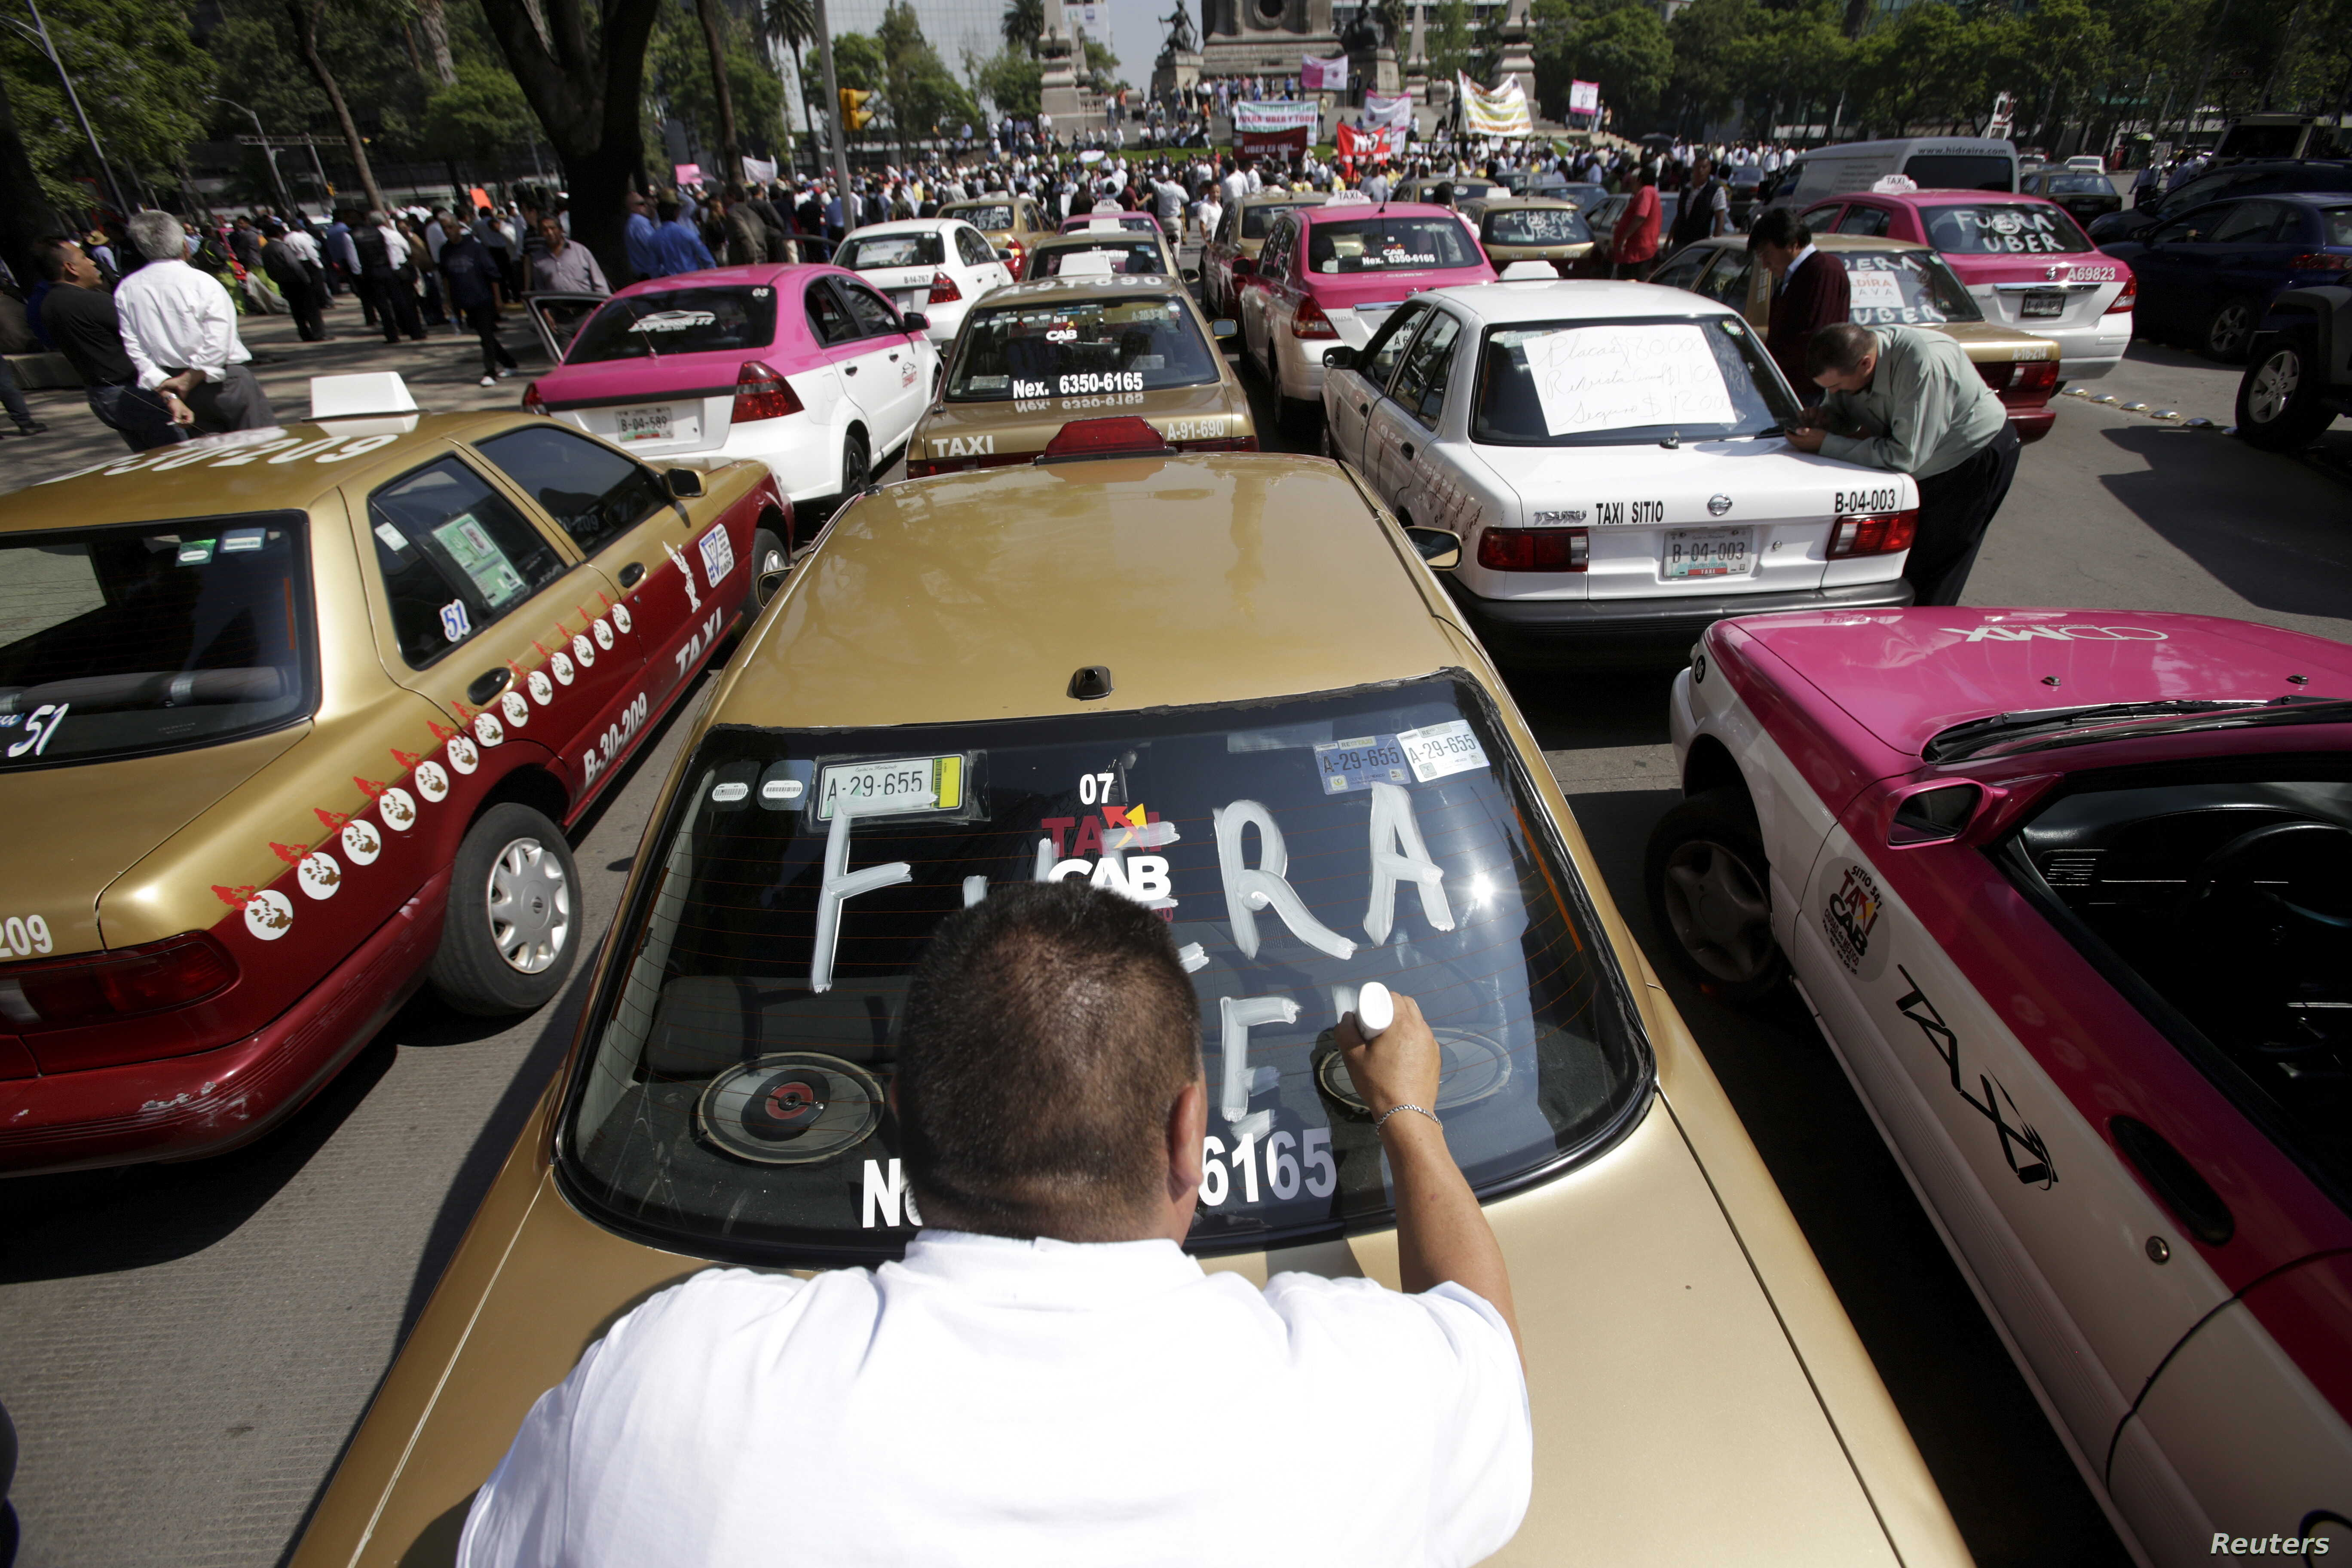 Nearly a Year On, Mexico City Uber Regulation Stuck in